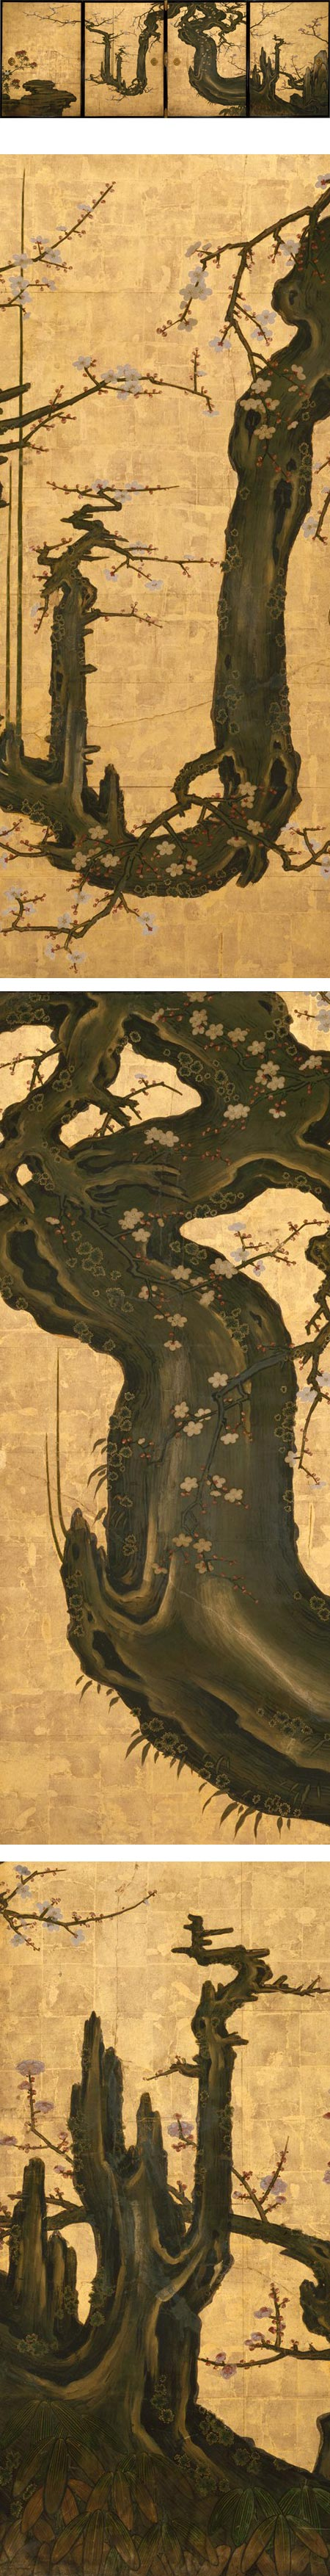 The Old Plum, Kano Sansetsu